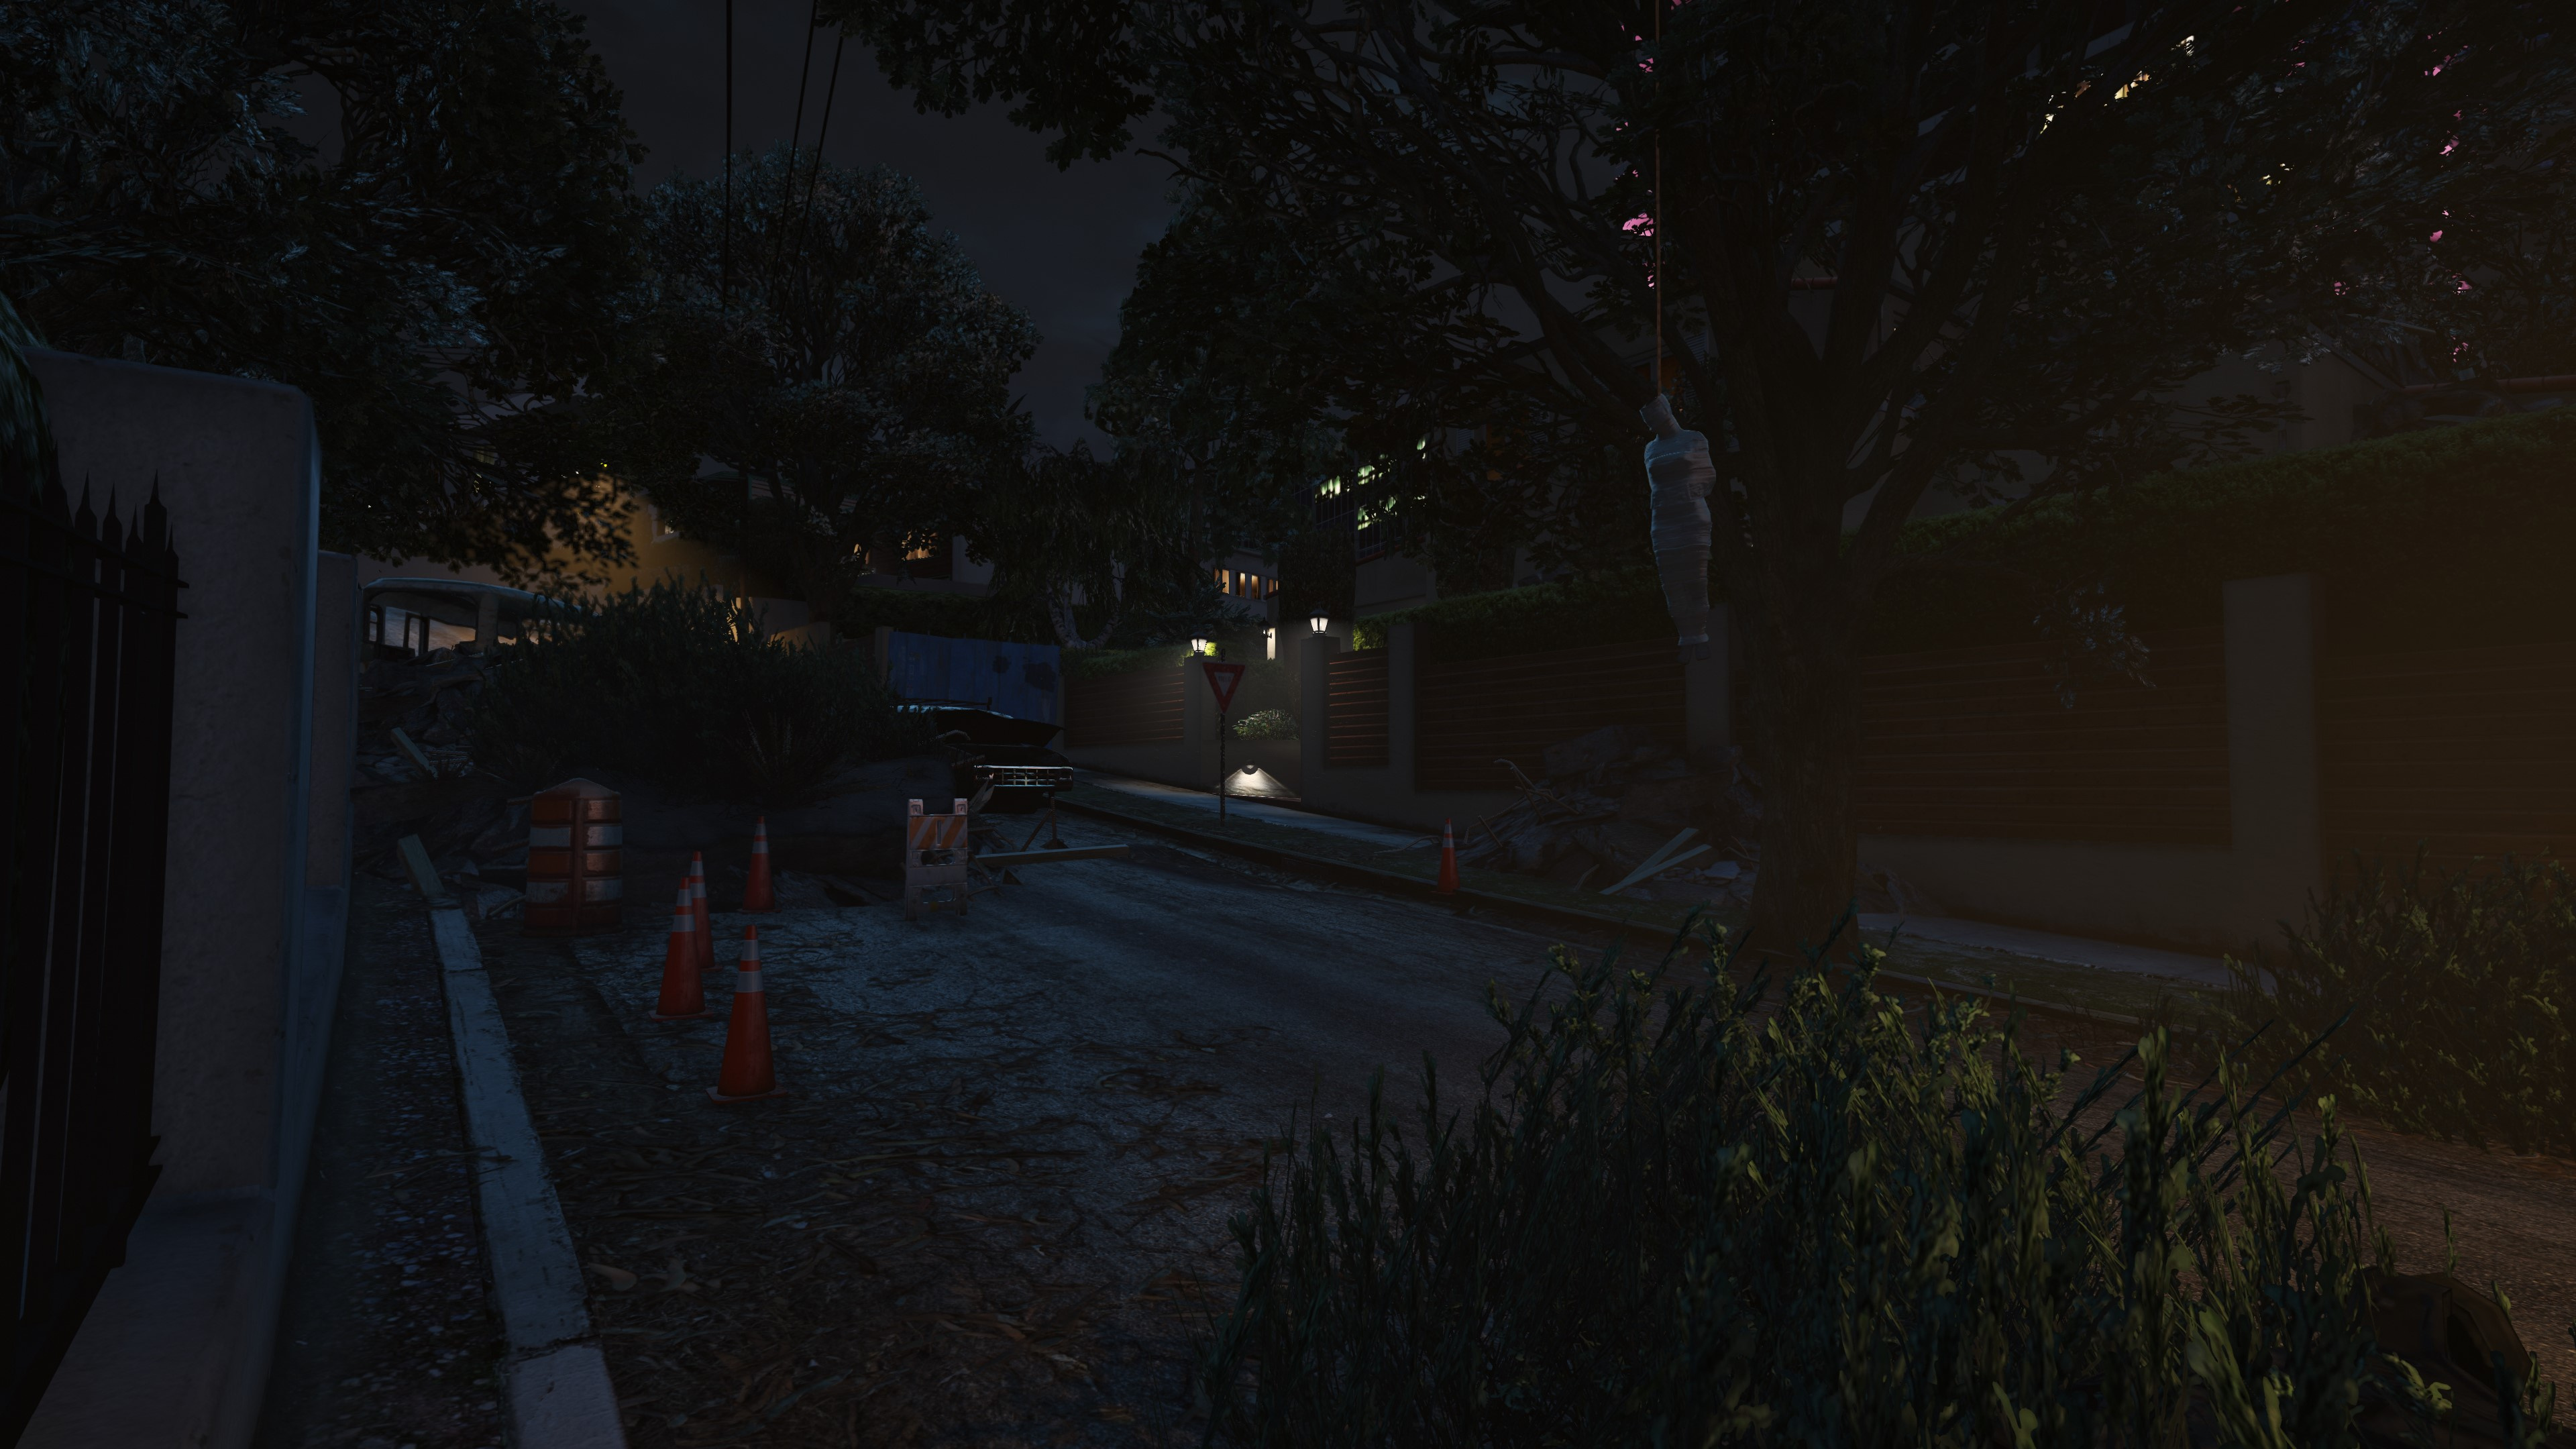 City Zombie [Map Editor] - GTA5-Mods.com on map of washington state road map, almira washington state road map, 1948 seattle road map, large usa road map, zombies transit map, old fashioned road map, salvation road map, puget sound map, hollywood road map,